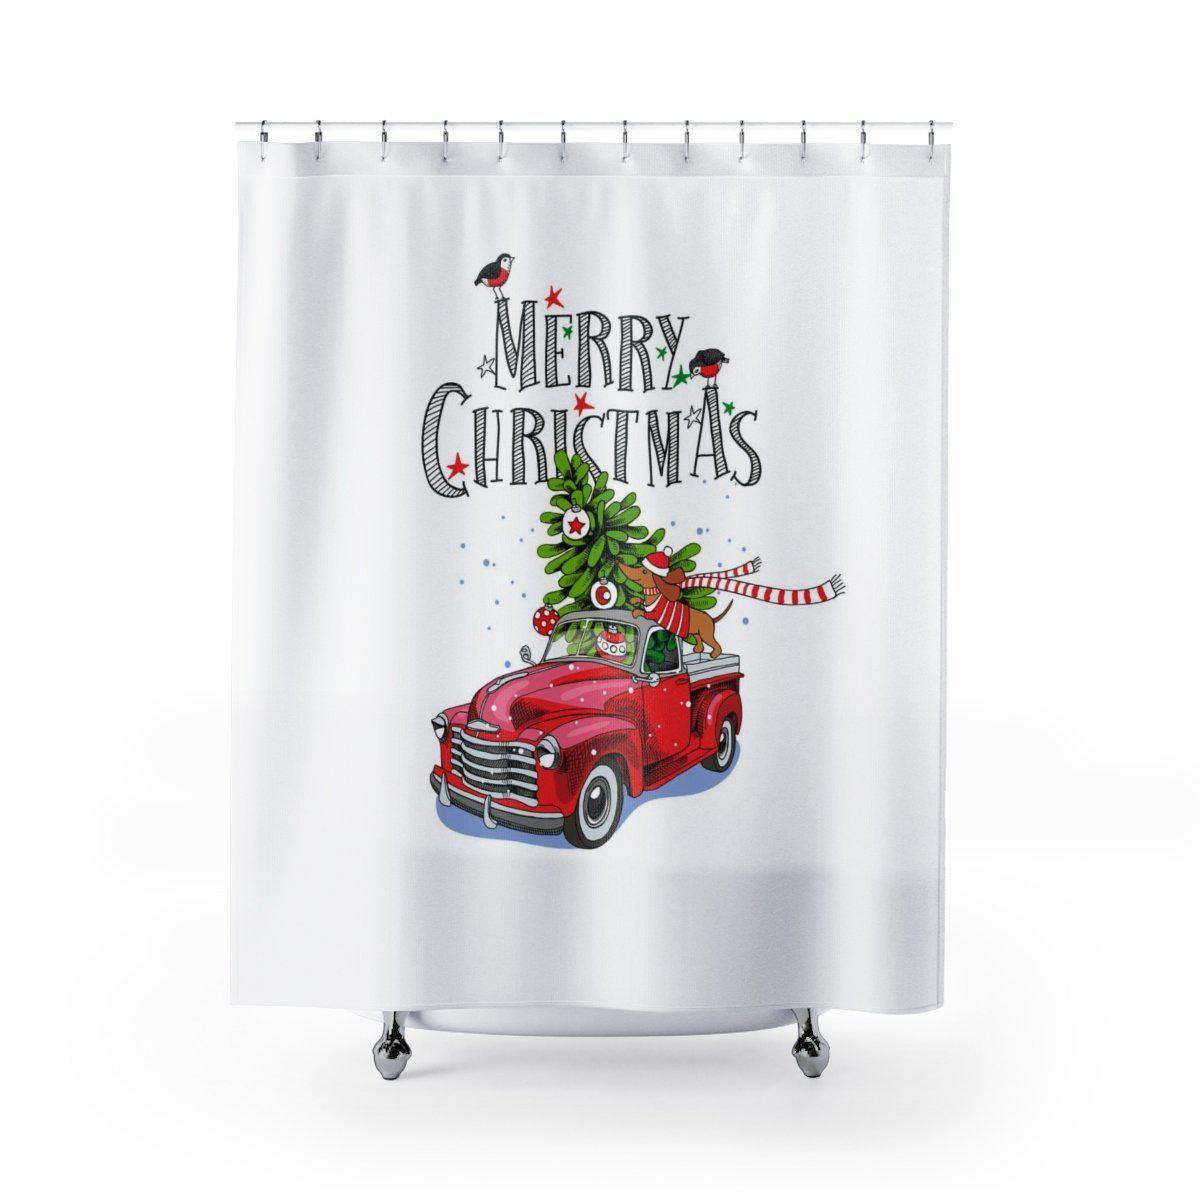 Vintage Car Christmas Shower Curtain - Shower Curtains - W.FRANCIS